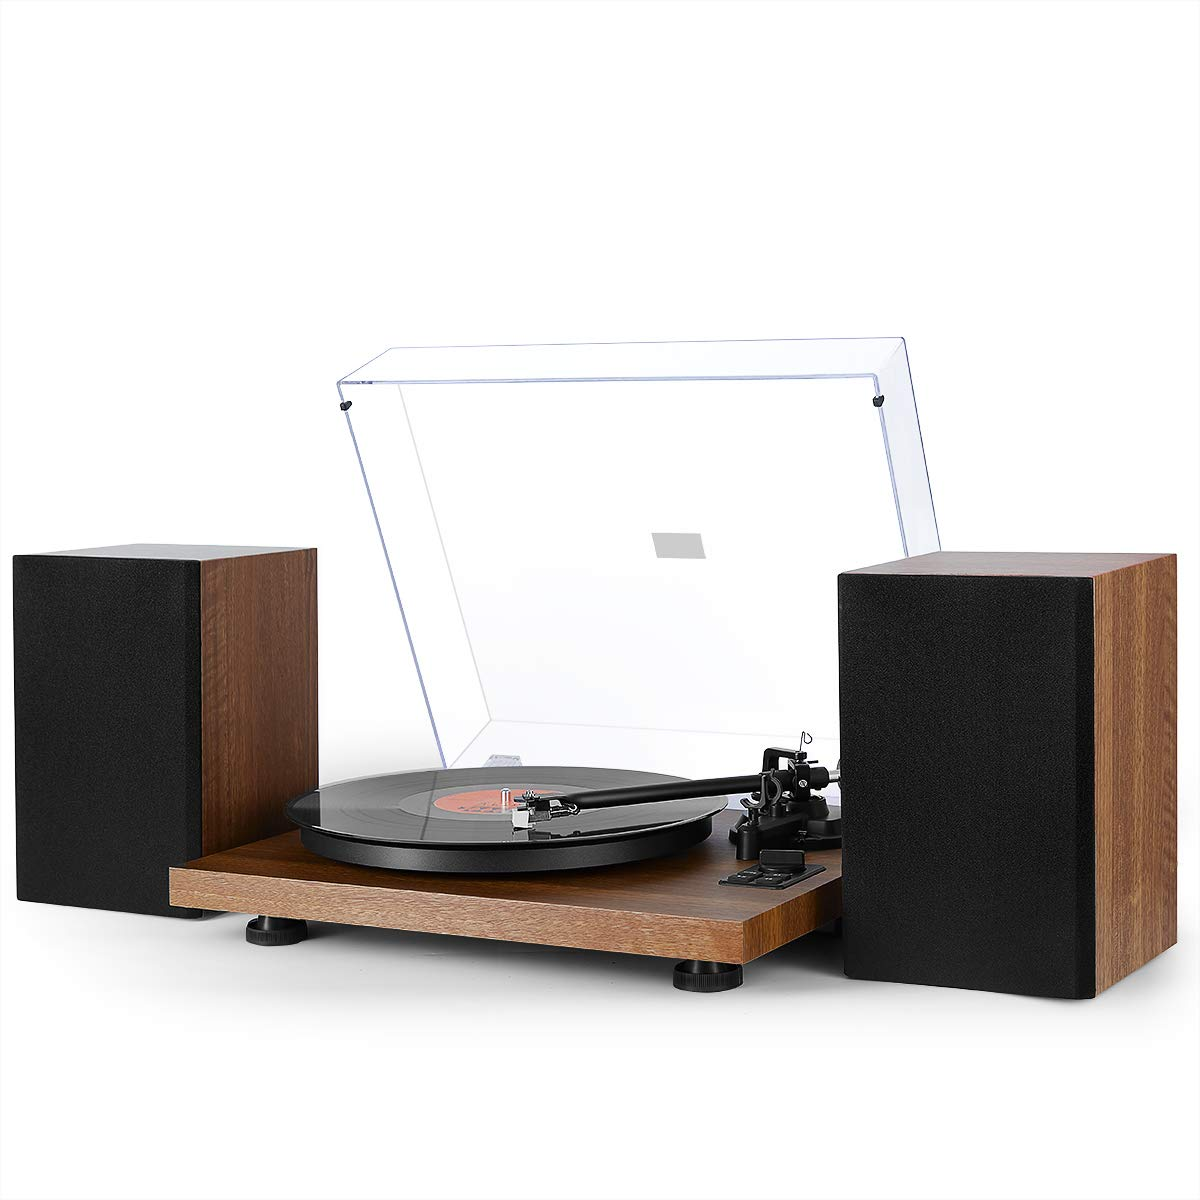 front facing 1ByOne Wireless Turntable